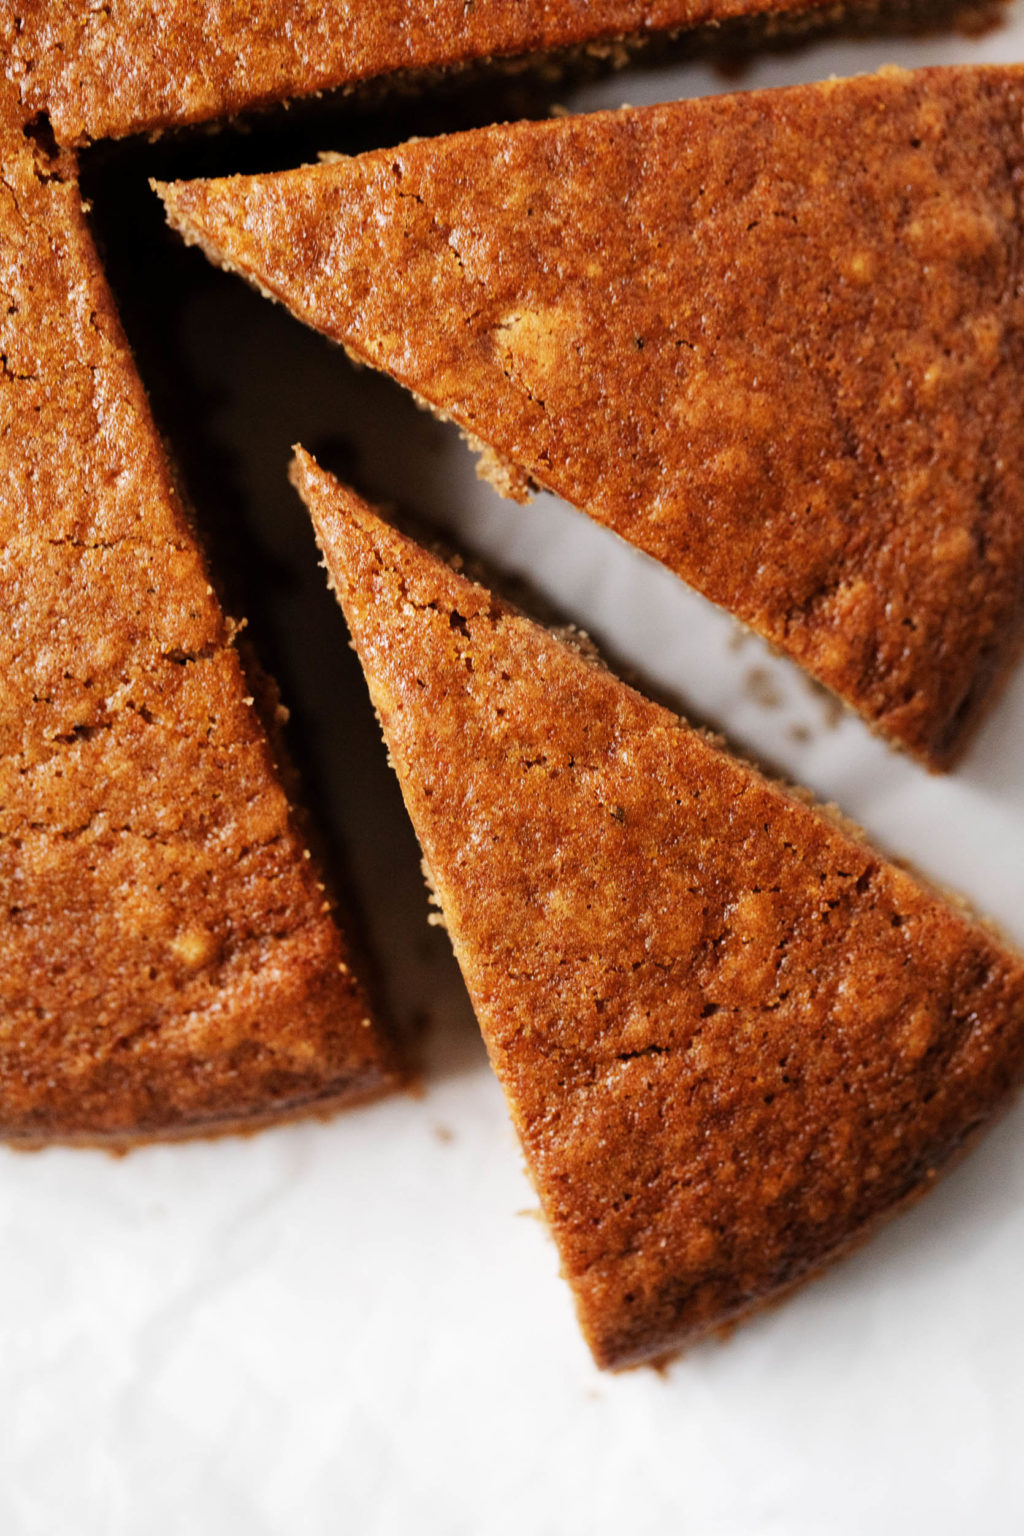 A zoomed in image of round gingerbread cake, which has just had a perfect slice cut out of it.